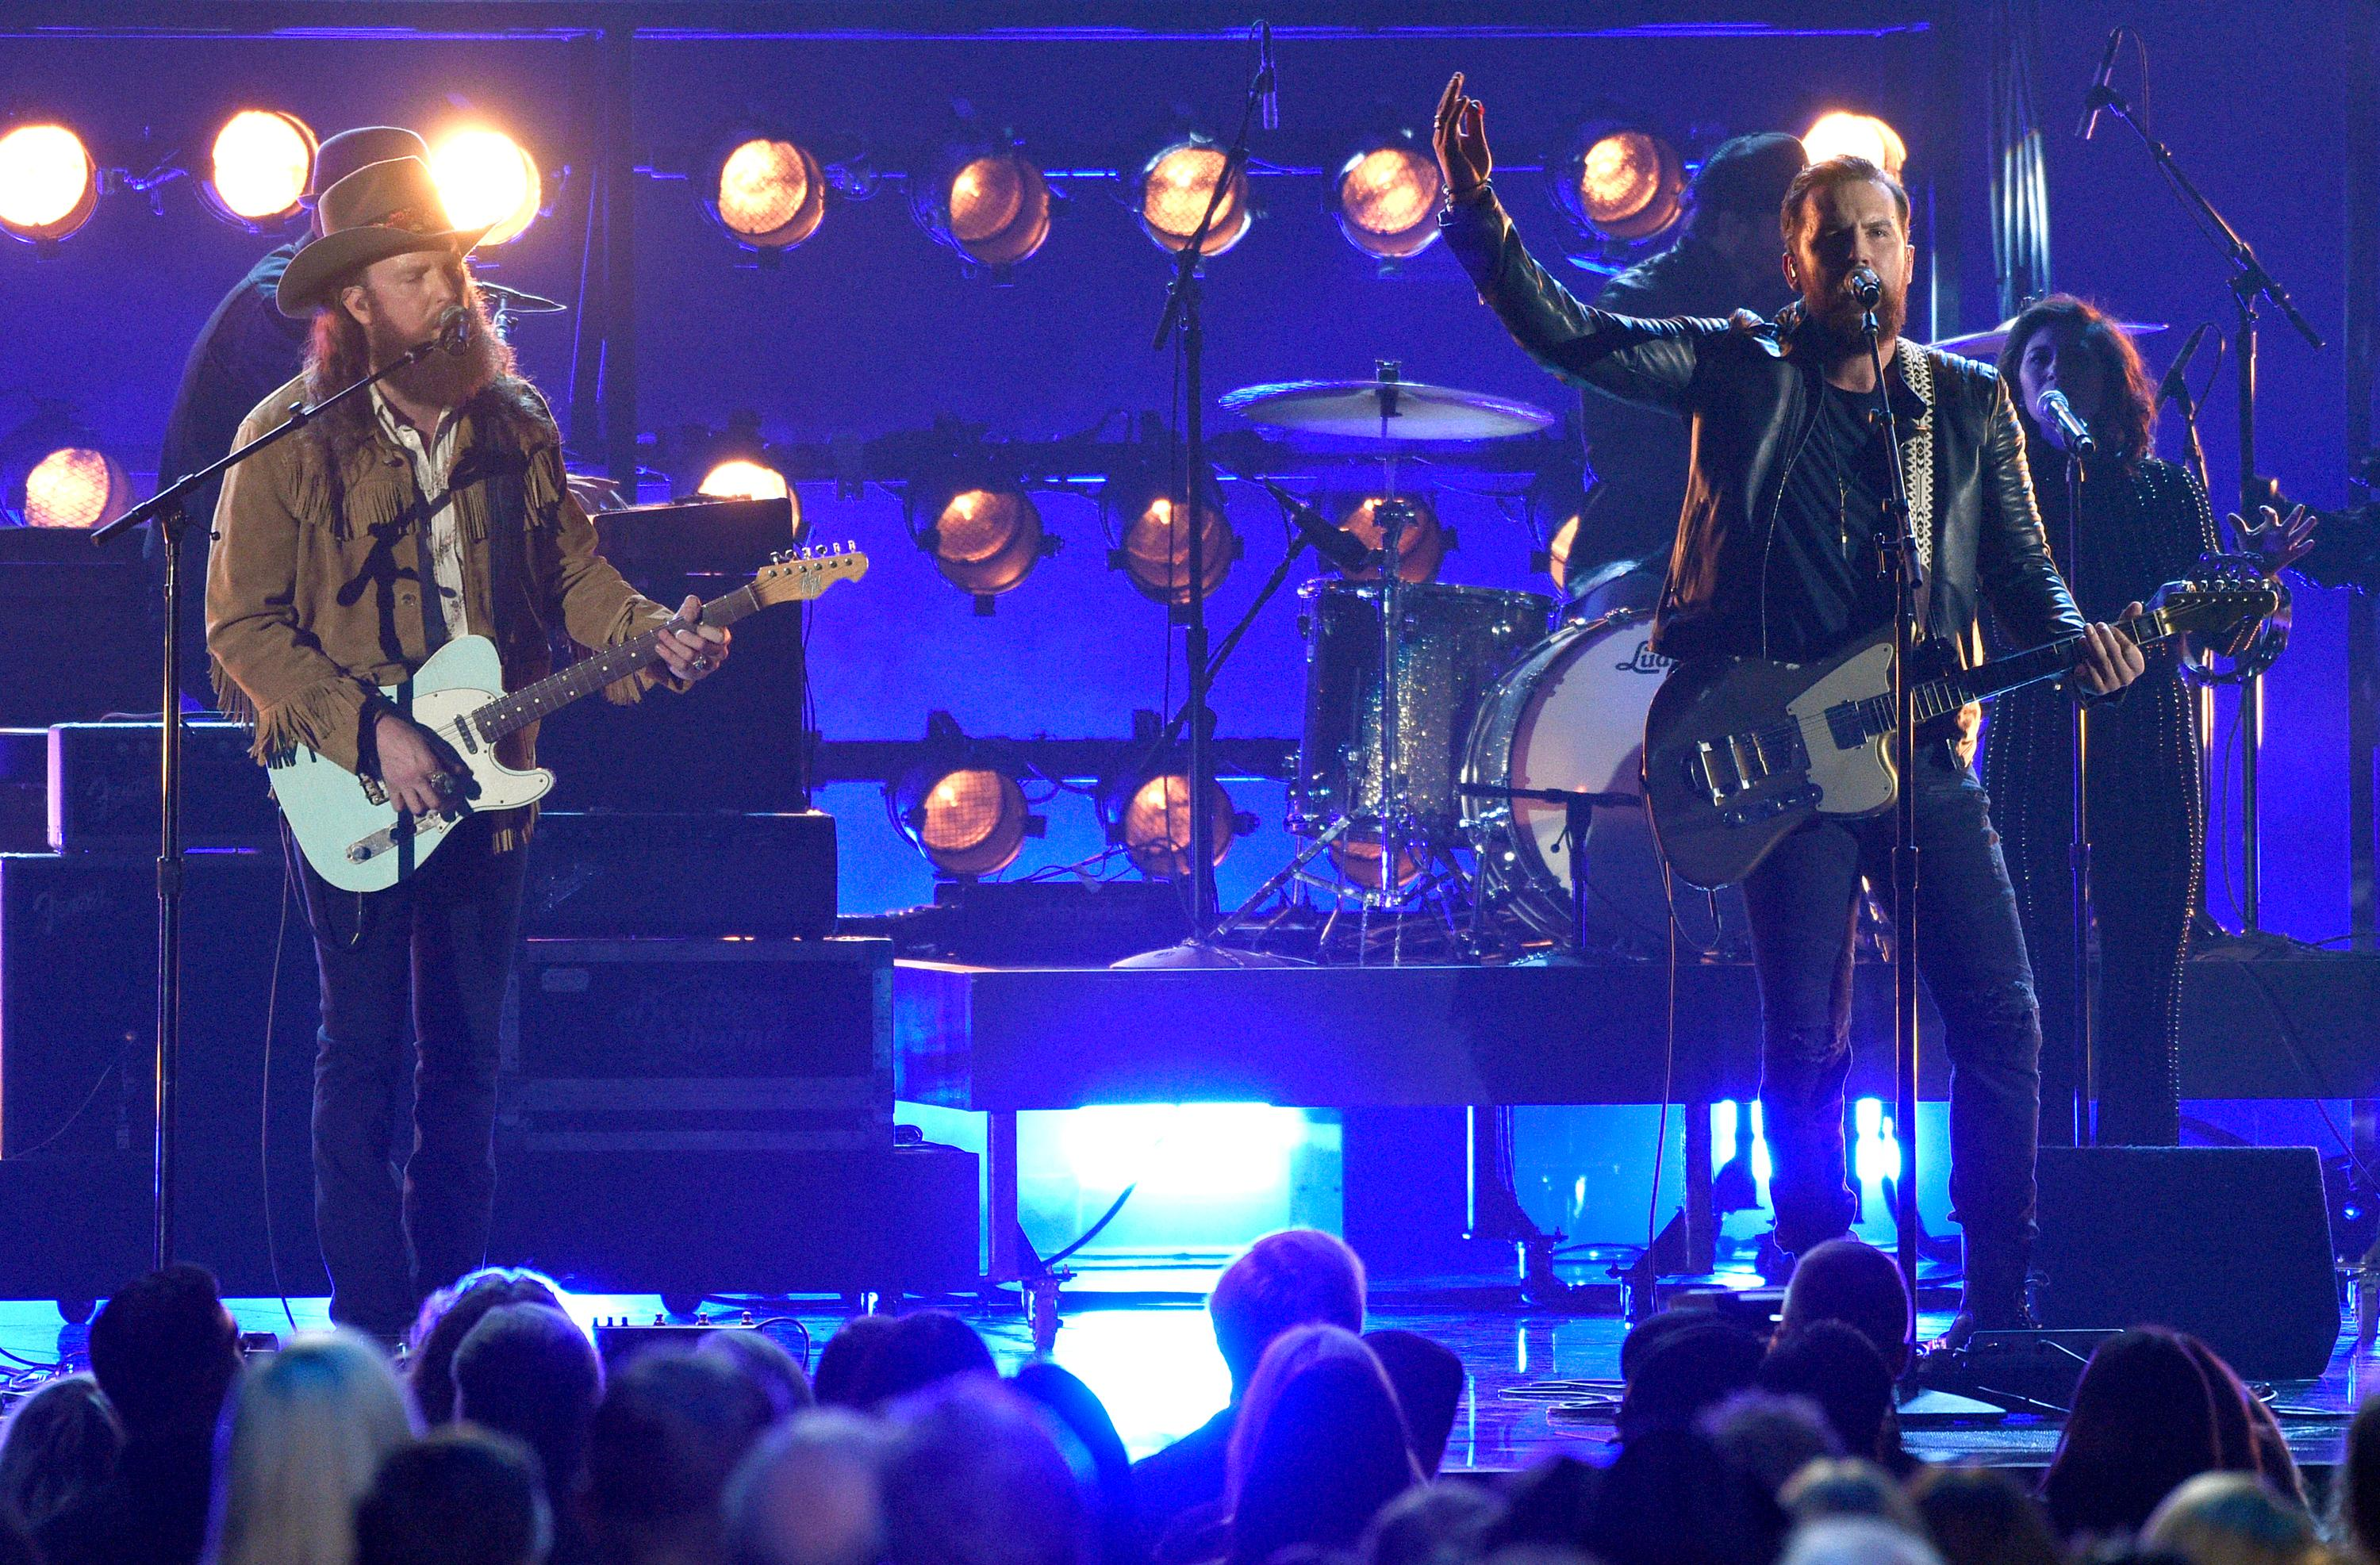 John Osborne, left, and T.J. Osborne, of Brothers Osborne, perform at the 51st annual CMA Awards at the Bridgestone Arena on Wednesday, Nov. 8, 2017, in Nashville, Tenn. (Photo by Chris Pizzello/Invision/AP)